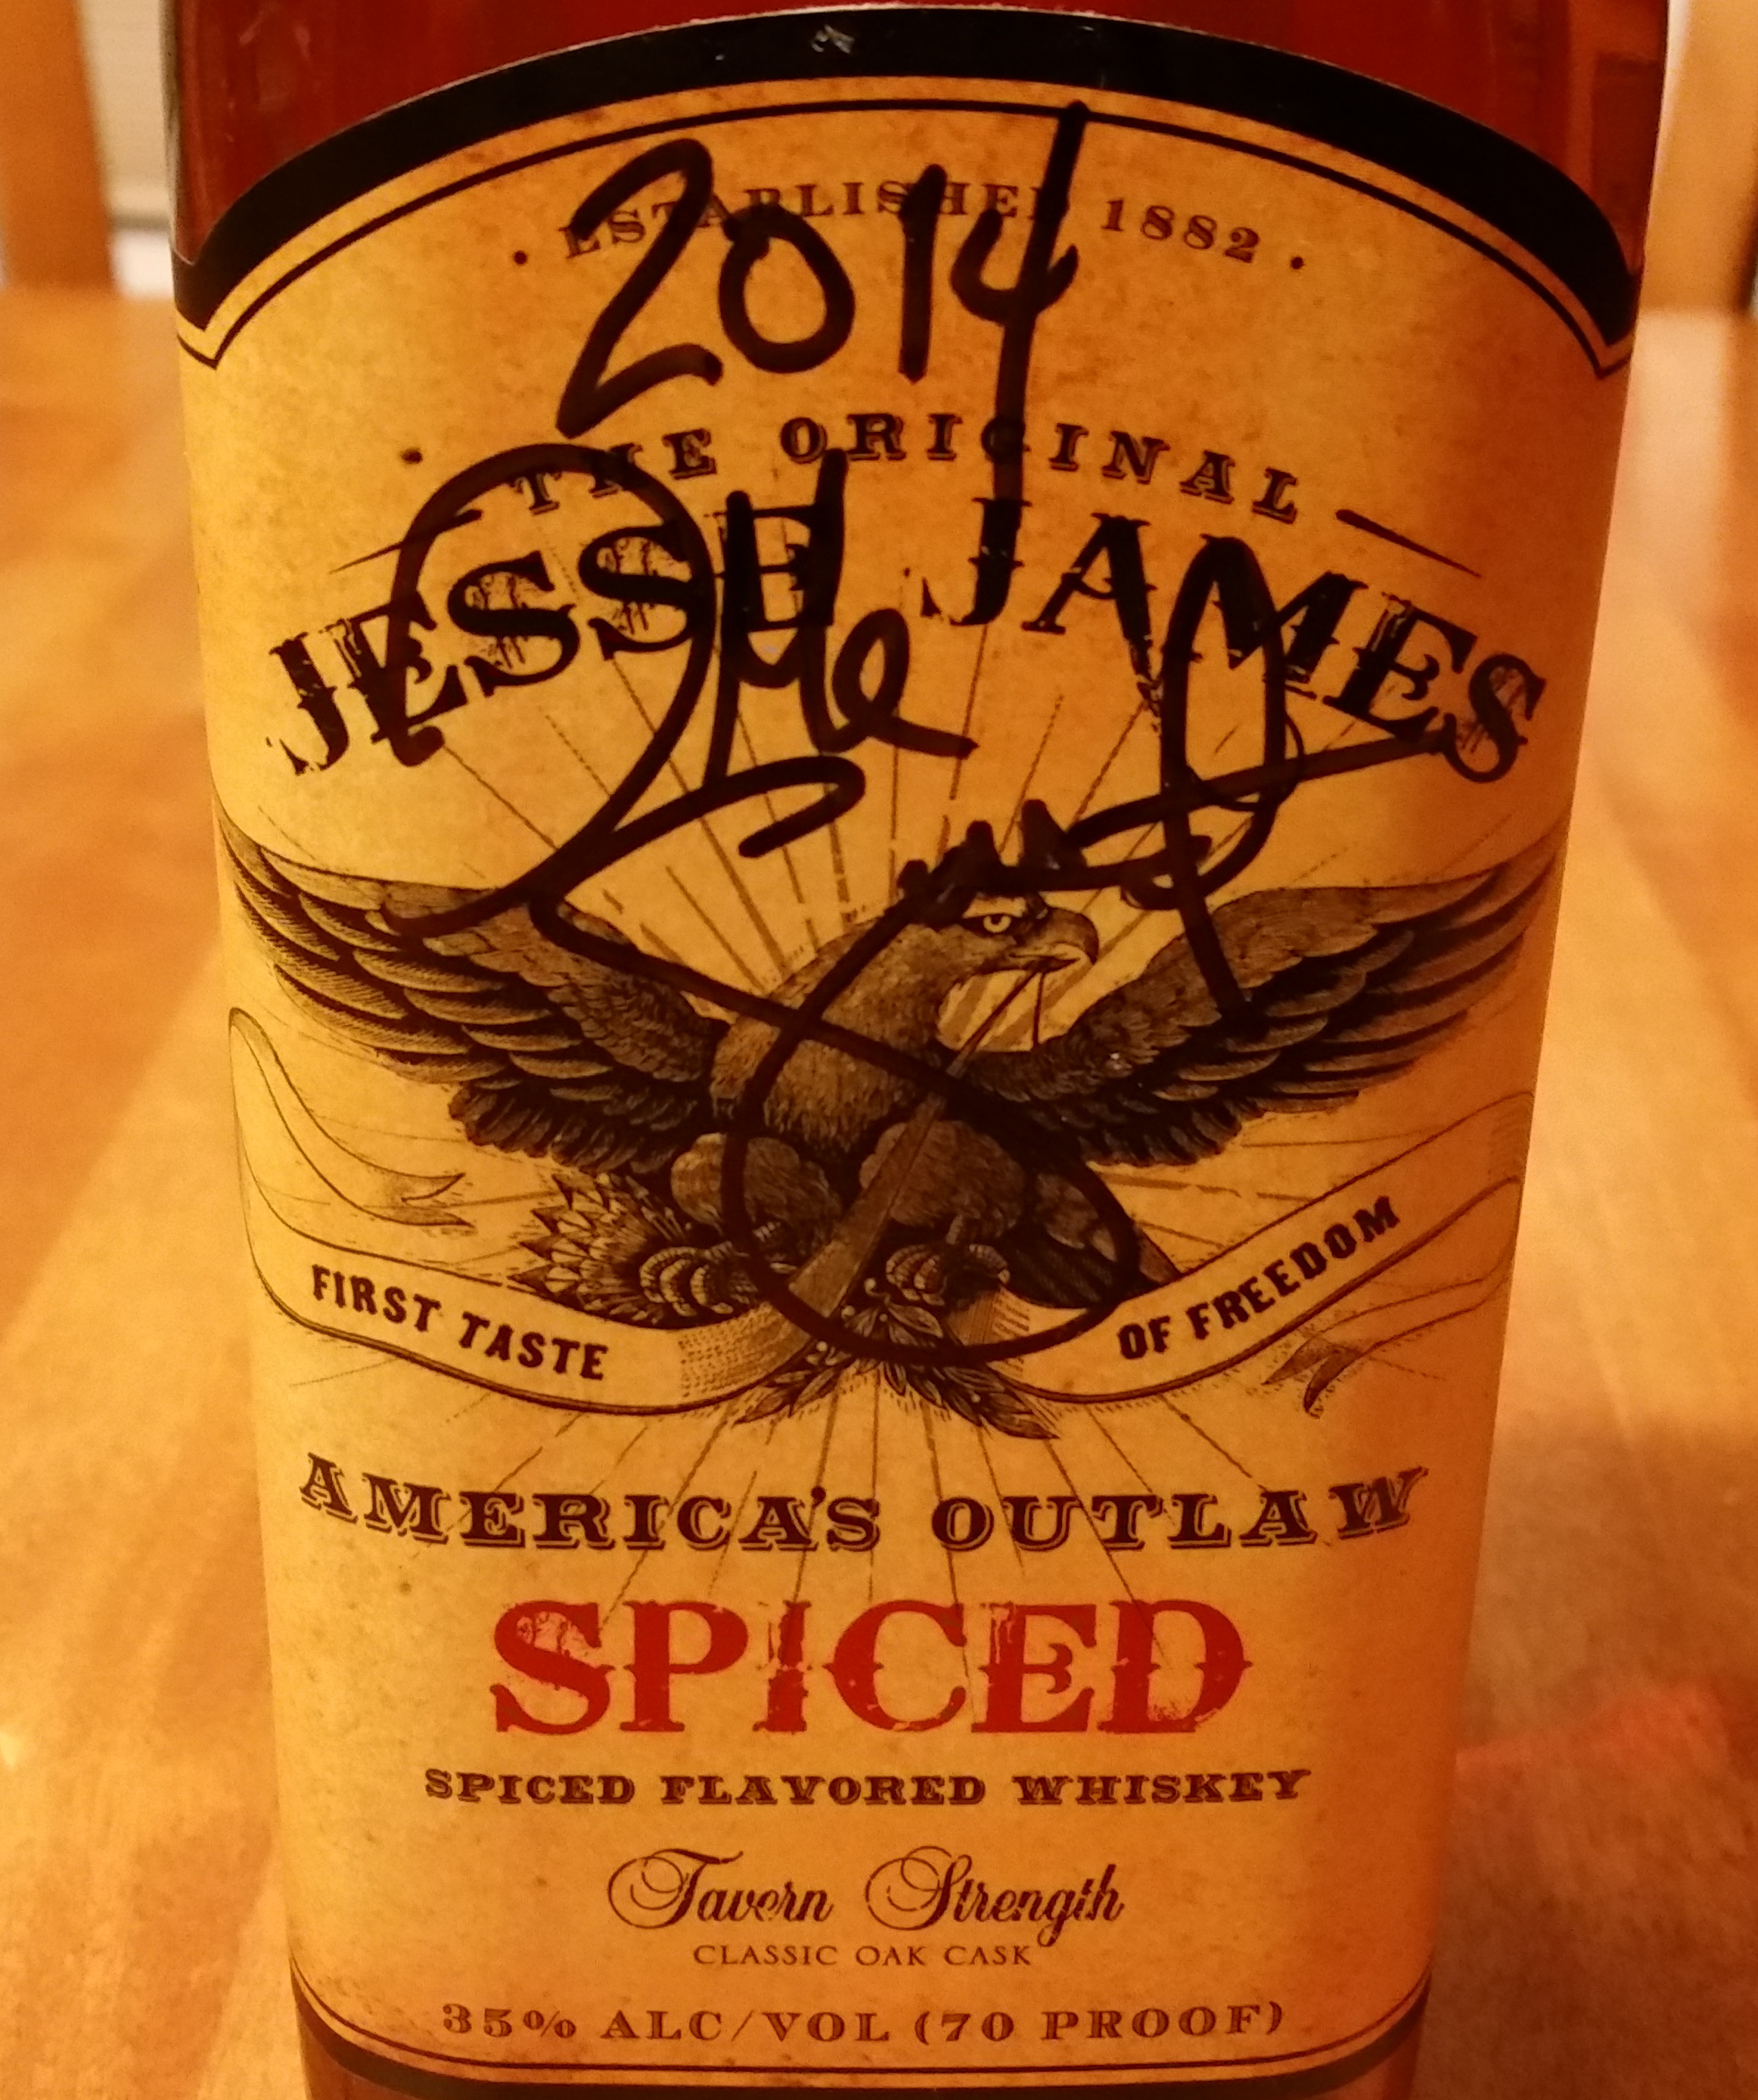 Jessie James Spiced Whiskey purchase at Hy-Vee Springfield Illinois